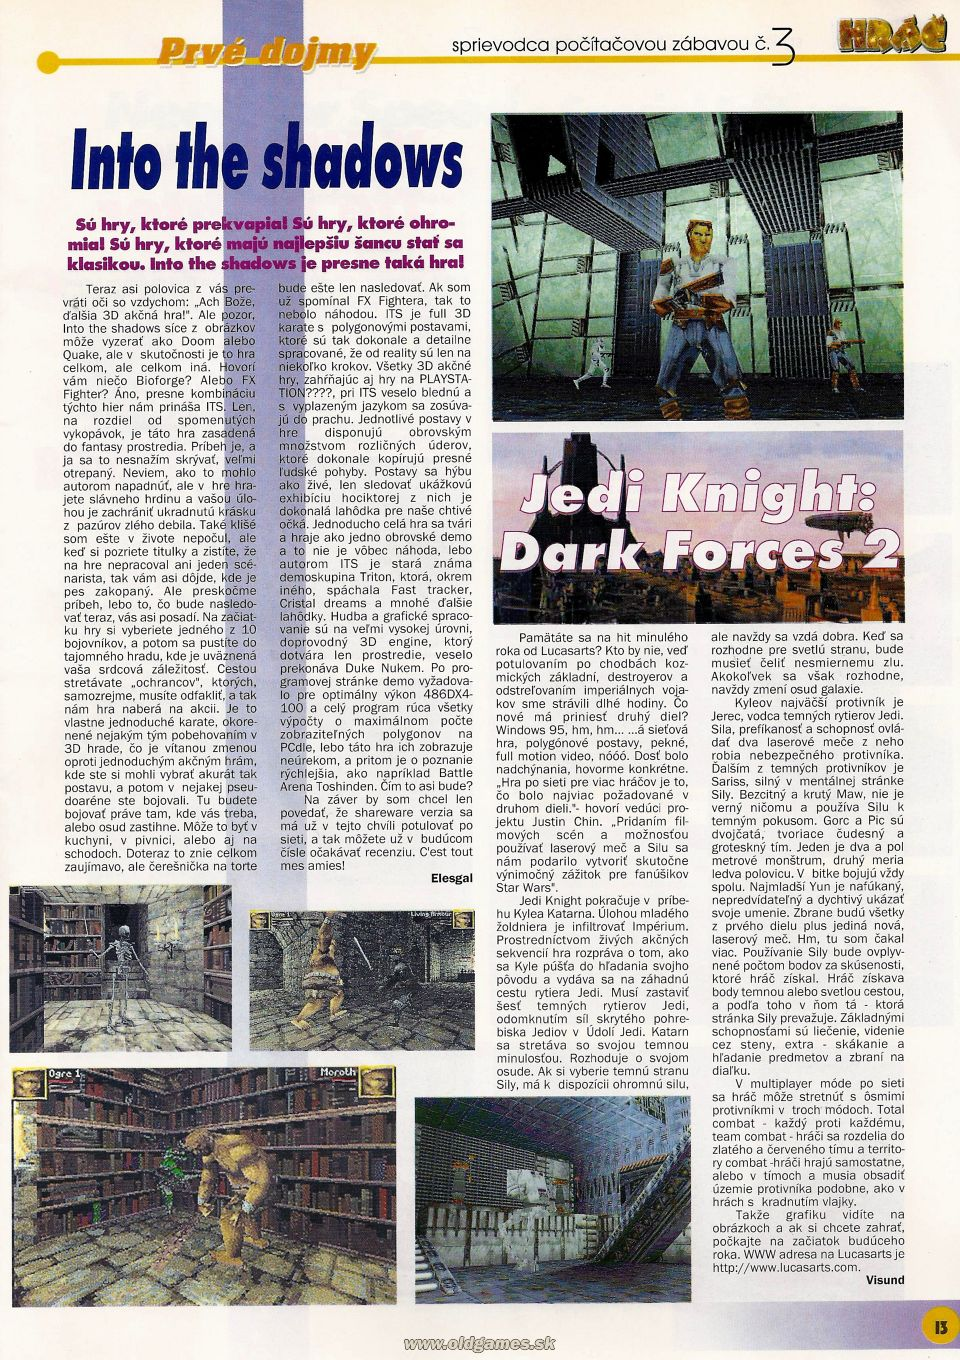 Preview: Into the Shadows, Jedi Knight - Dark Forces 2